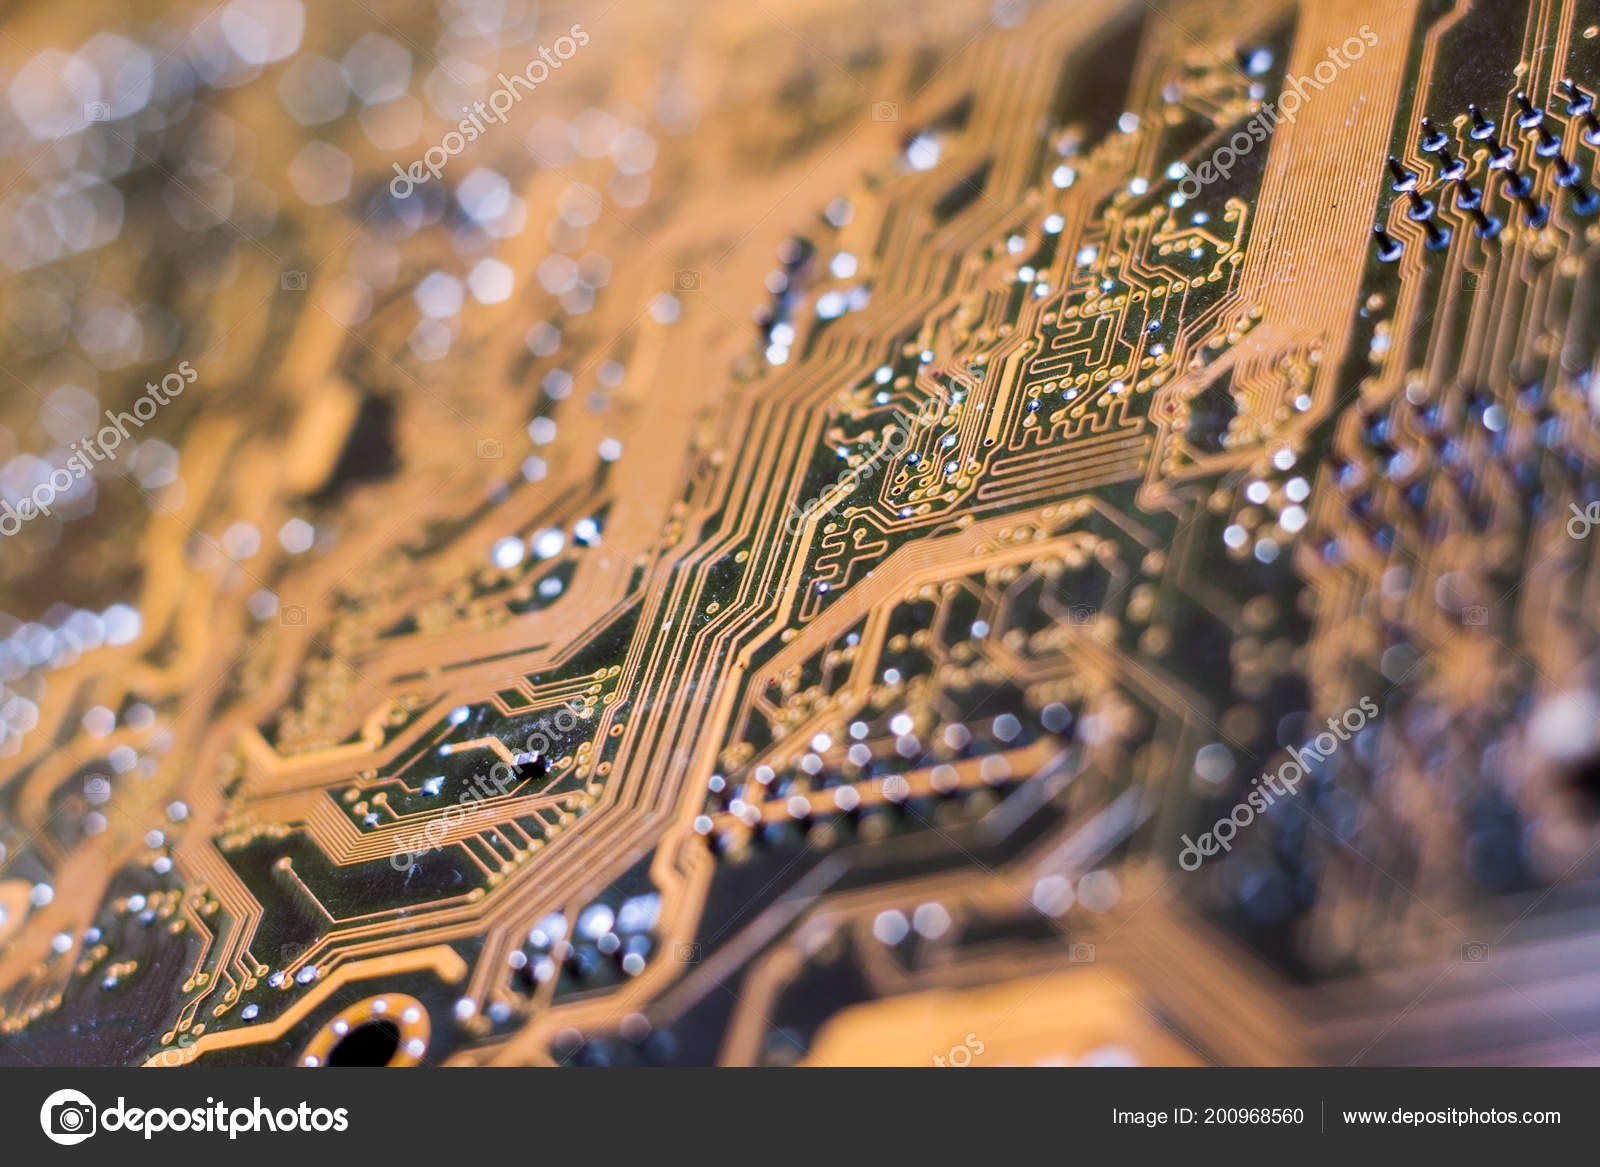 Printed Circuit Board Pcb Connects Electronic Electrical Components Of Transistors Capacitors And Other A Or Using Conductive Tracks From Copper Diodes Ic Chips Resistors